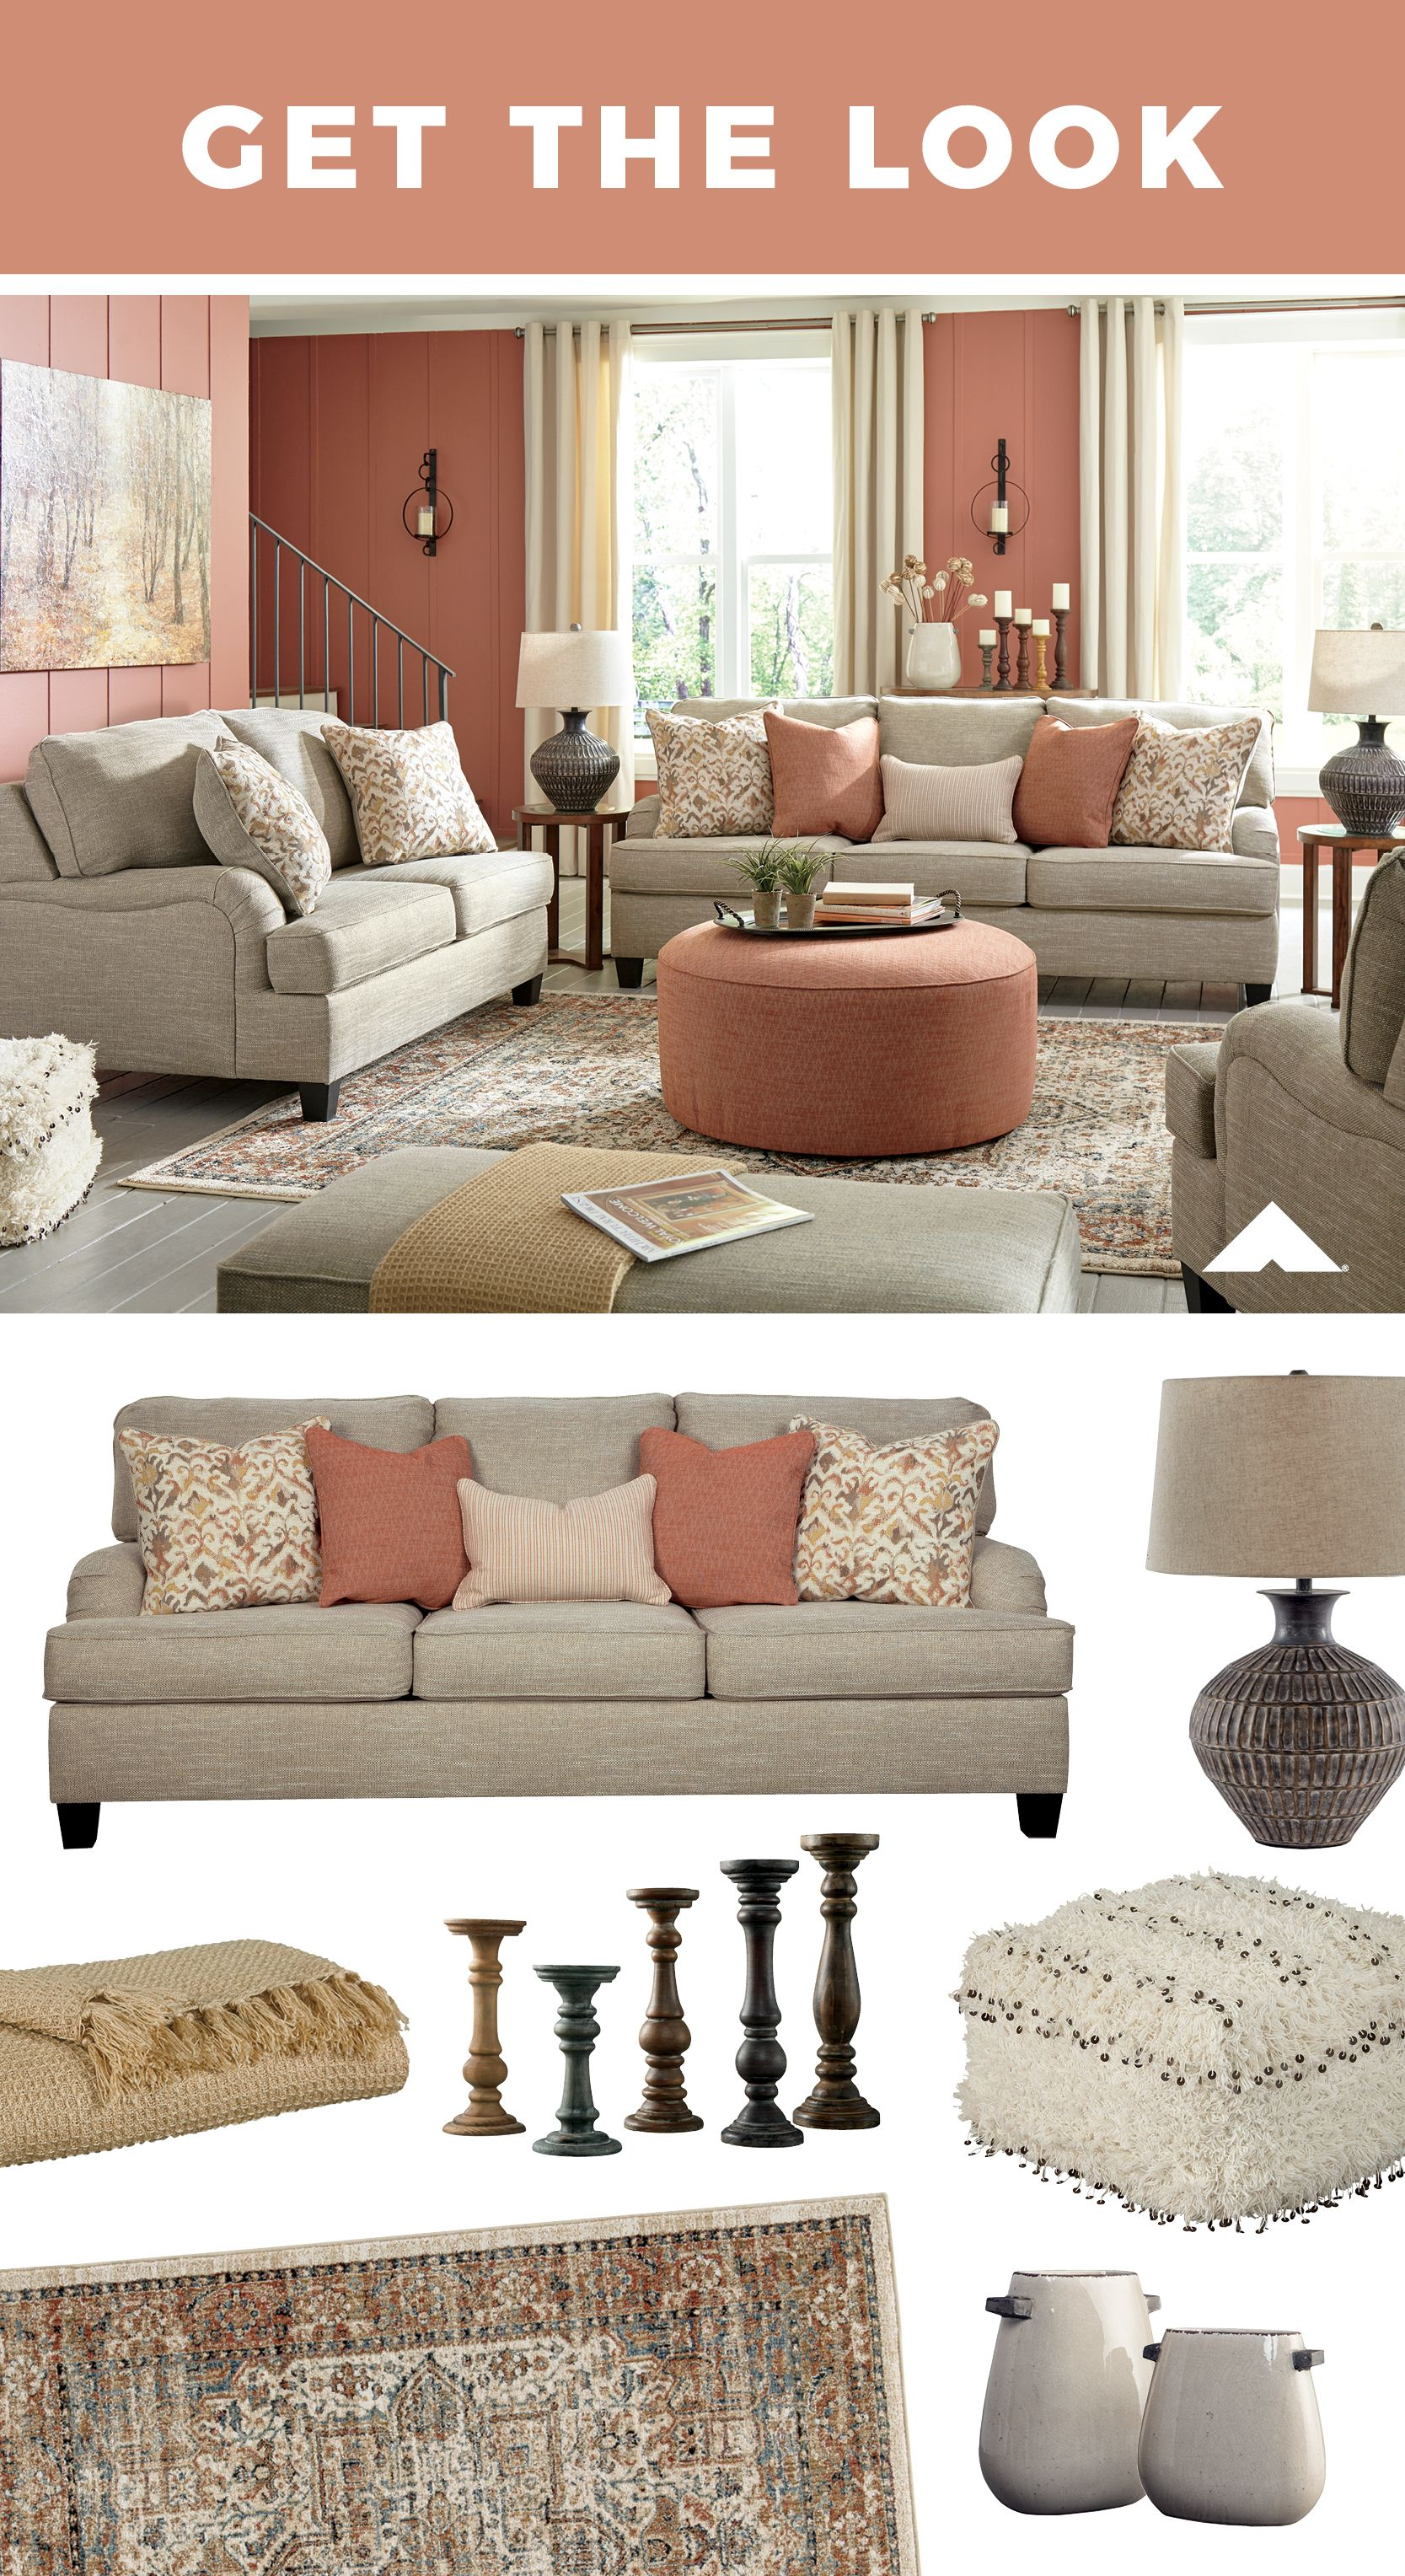 Get The Look From Ashley Furniture Home Decor Living Room Pink And Coral Accents And Ashley Furniture Living Room Modern Furniture Living Room Living Room